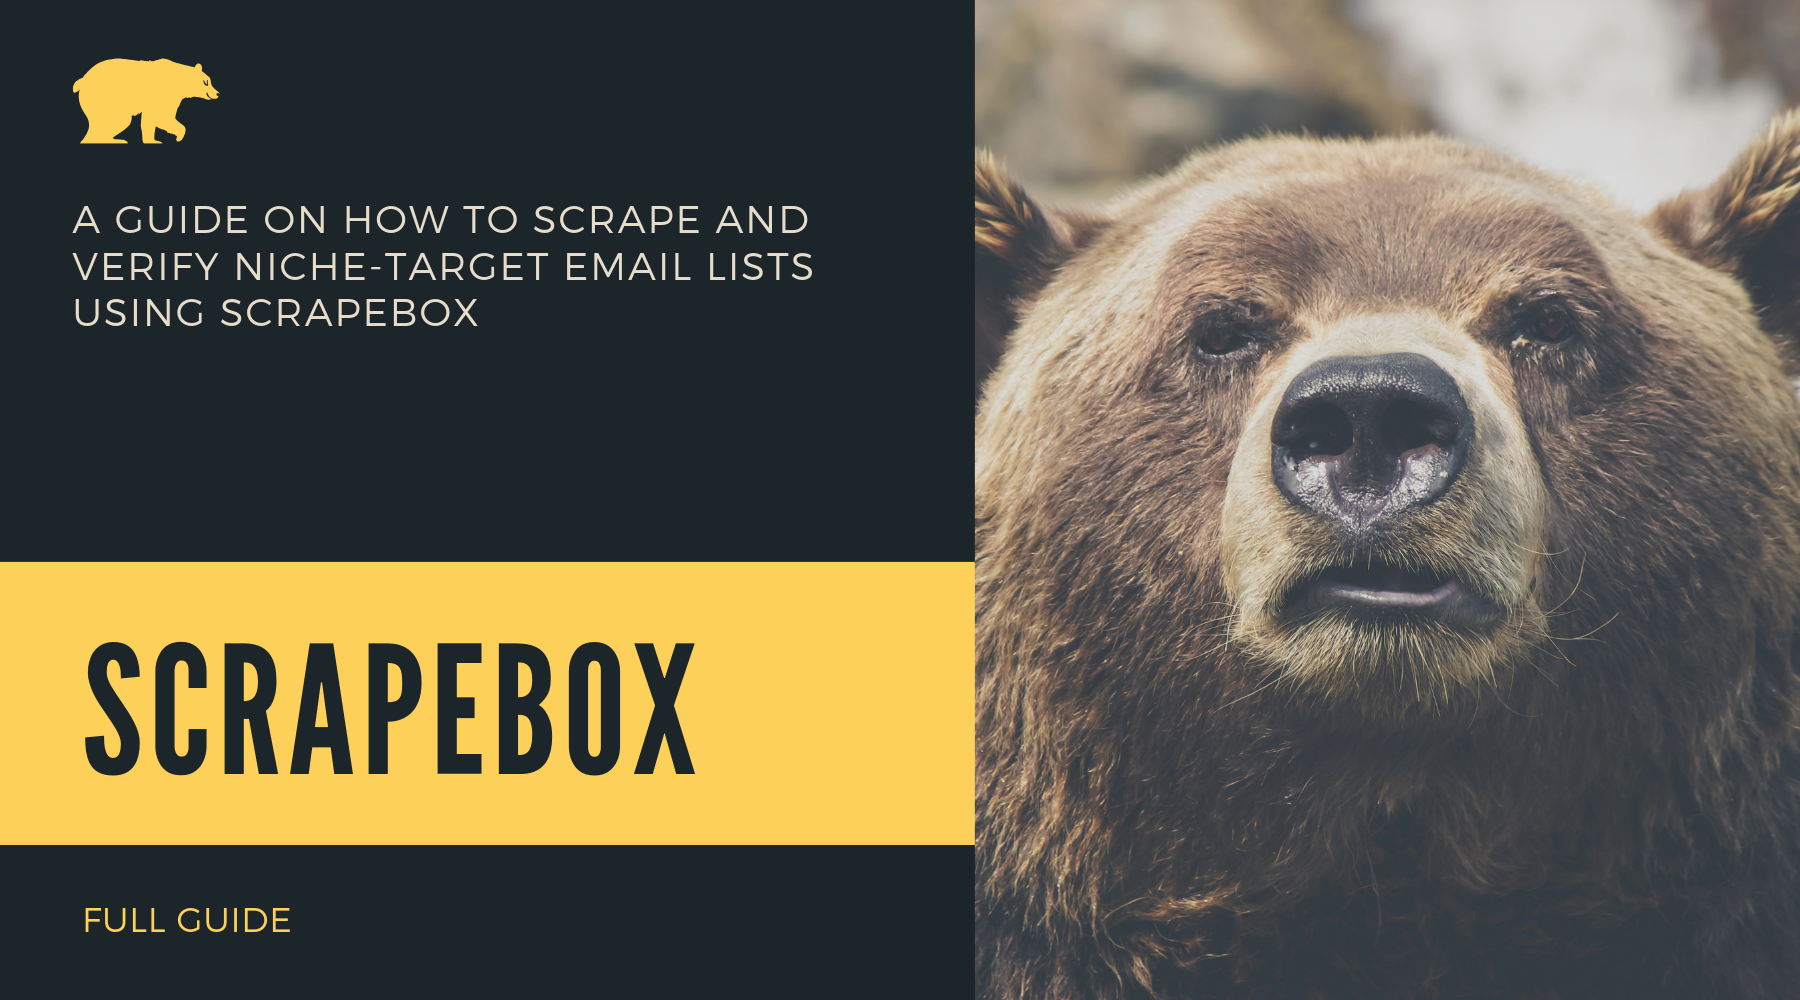 A GUIDE ON HOW TO SCRAPE AND VERIFY NICHE-TARGET EMAIL LISTS USING SCRAPEBOX